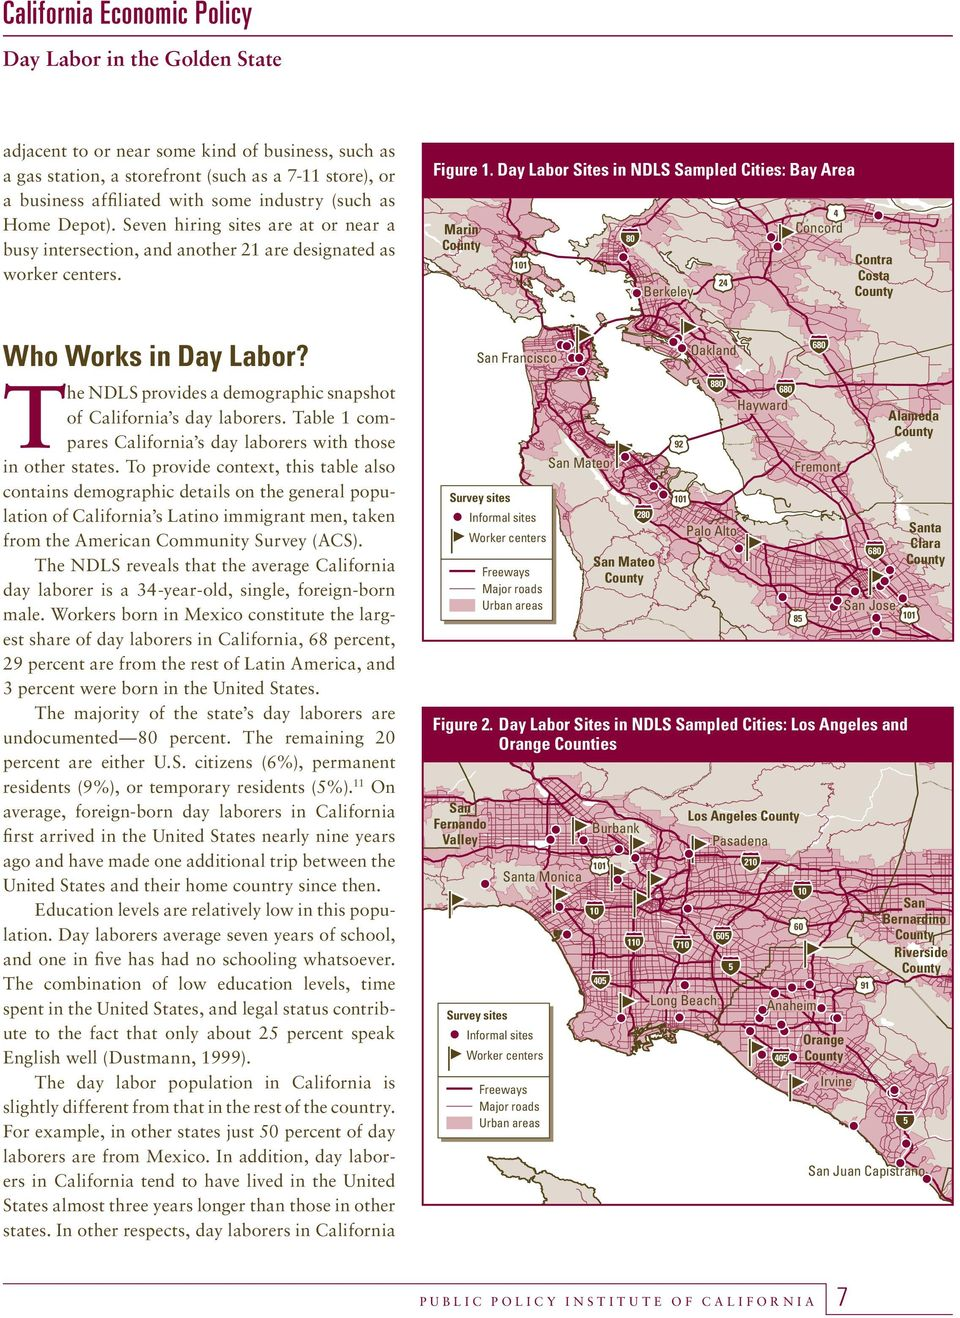 Day Labor Sites in NDLS Sampled Cities: Bay Area Marin County 101 80 Berkeley 24 4 Concord Contra Costa County Who Works in Day Labor?